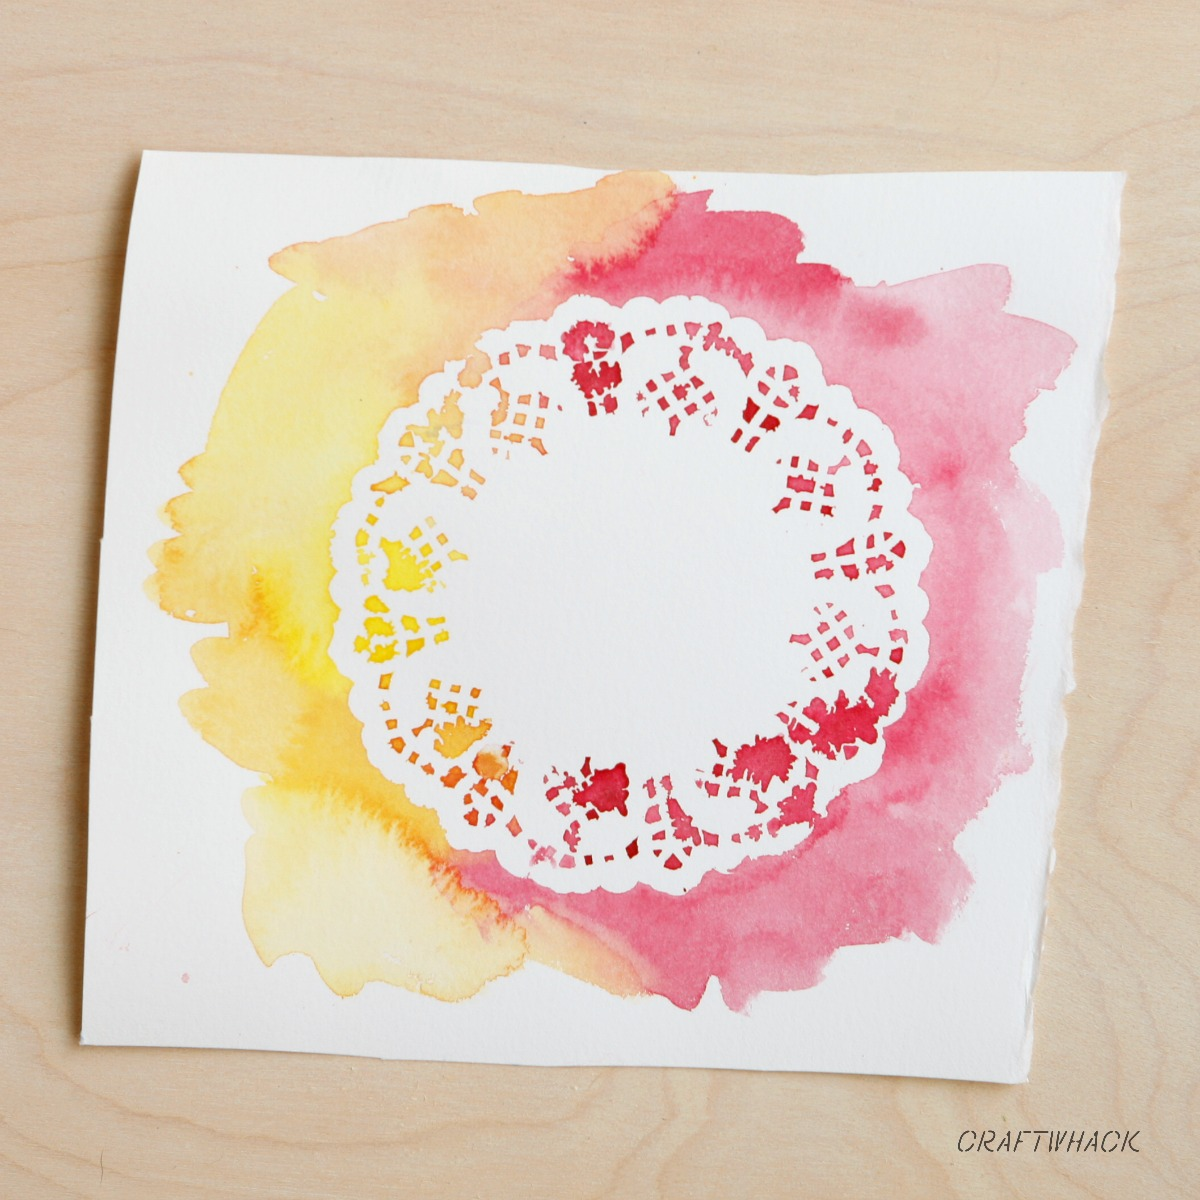 Watercolor doily painting and other watercolor techniques with stencils